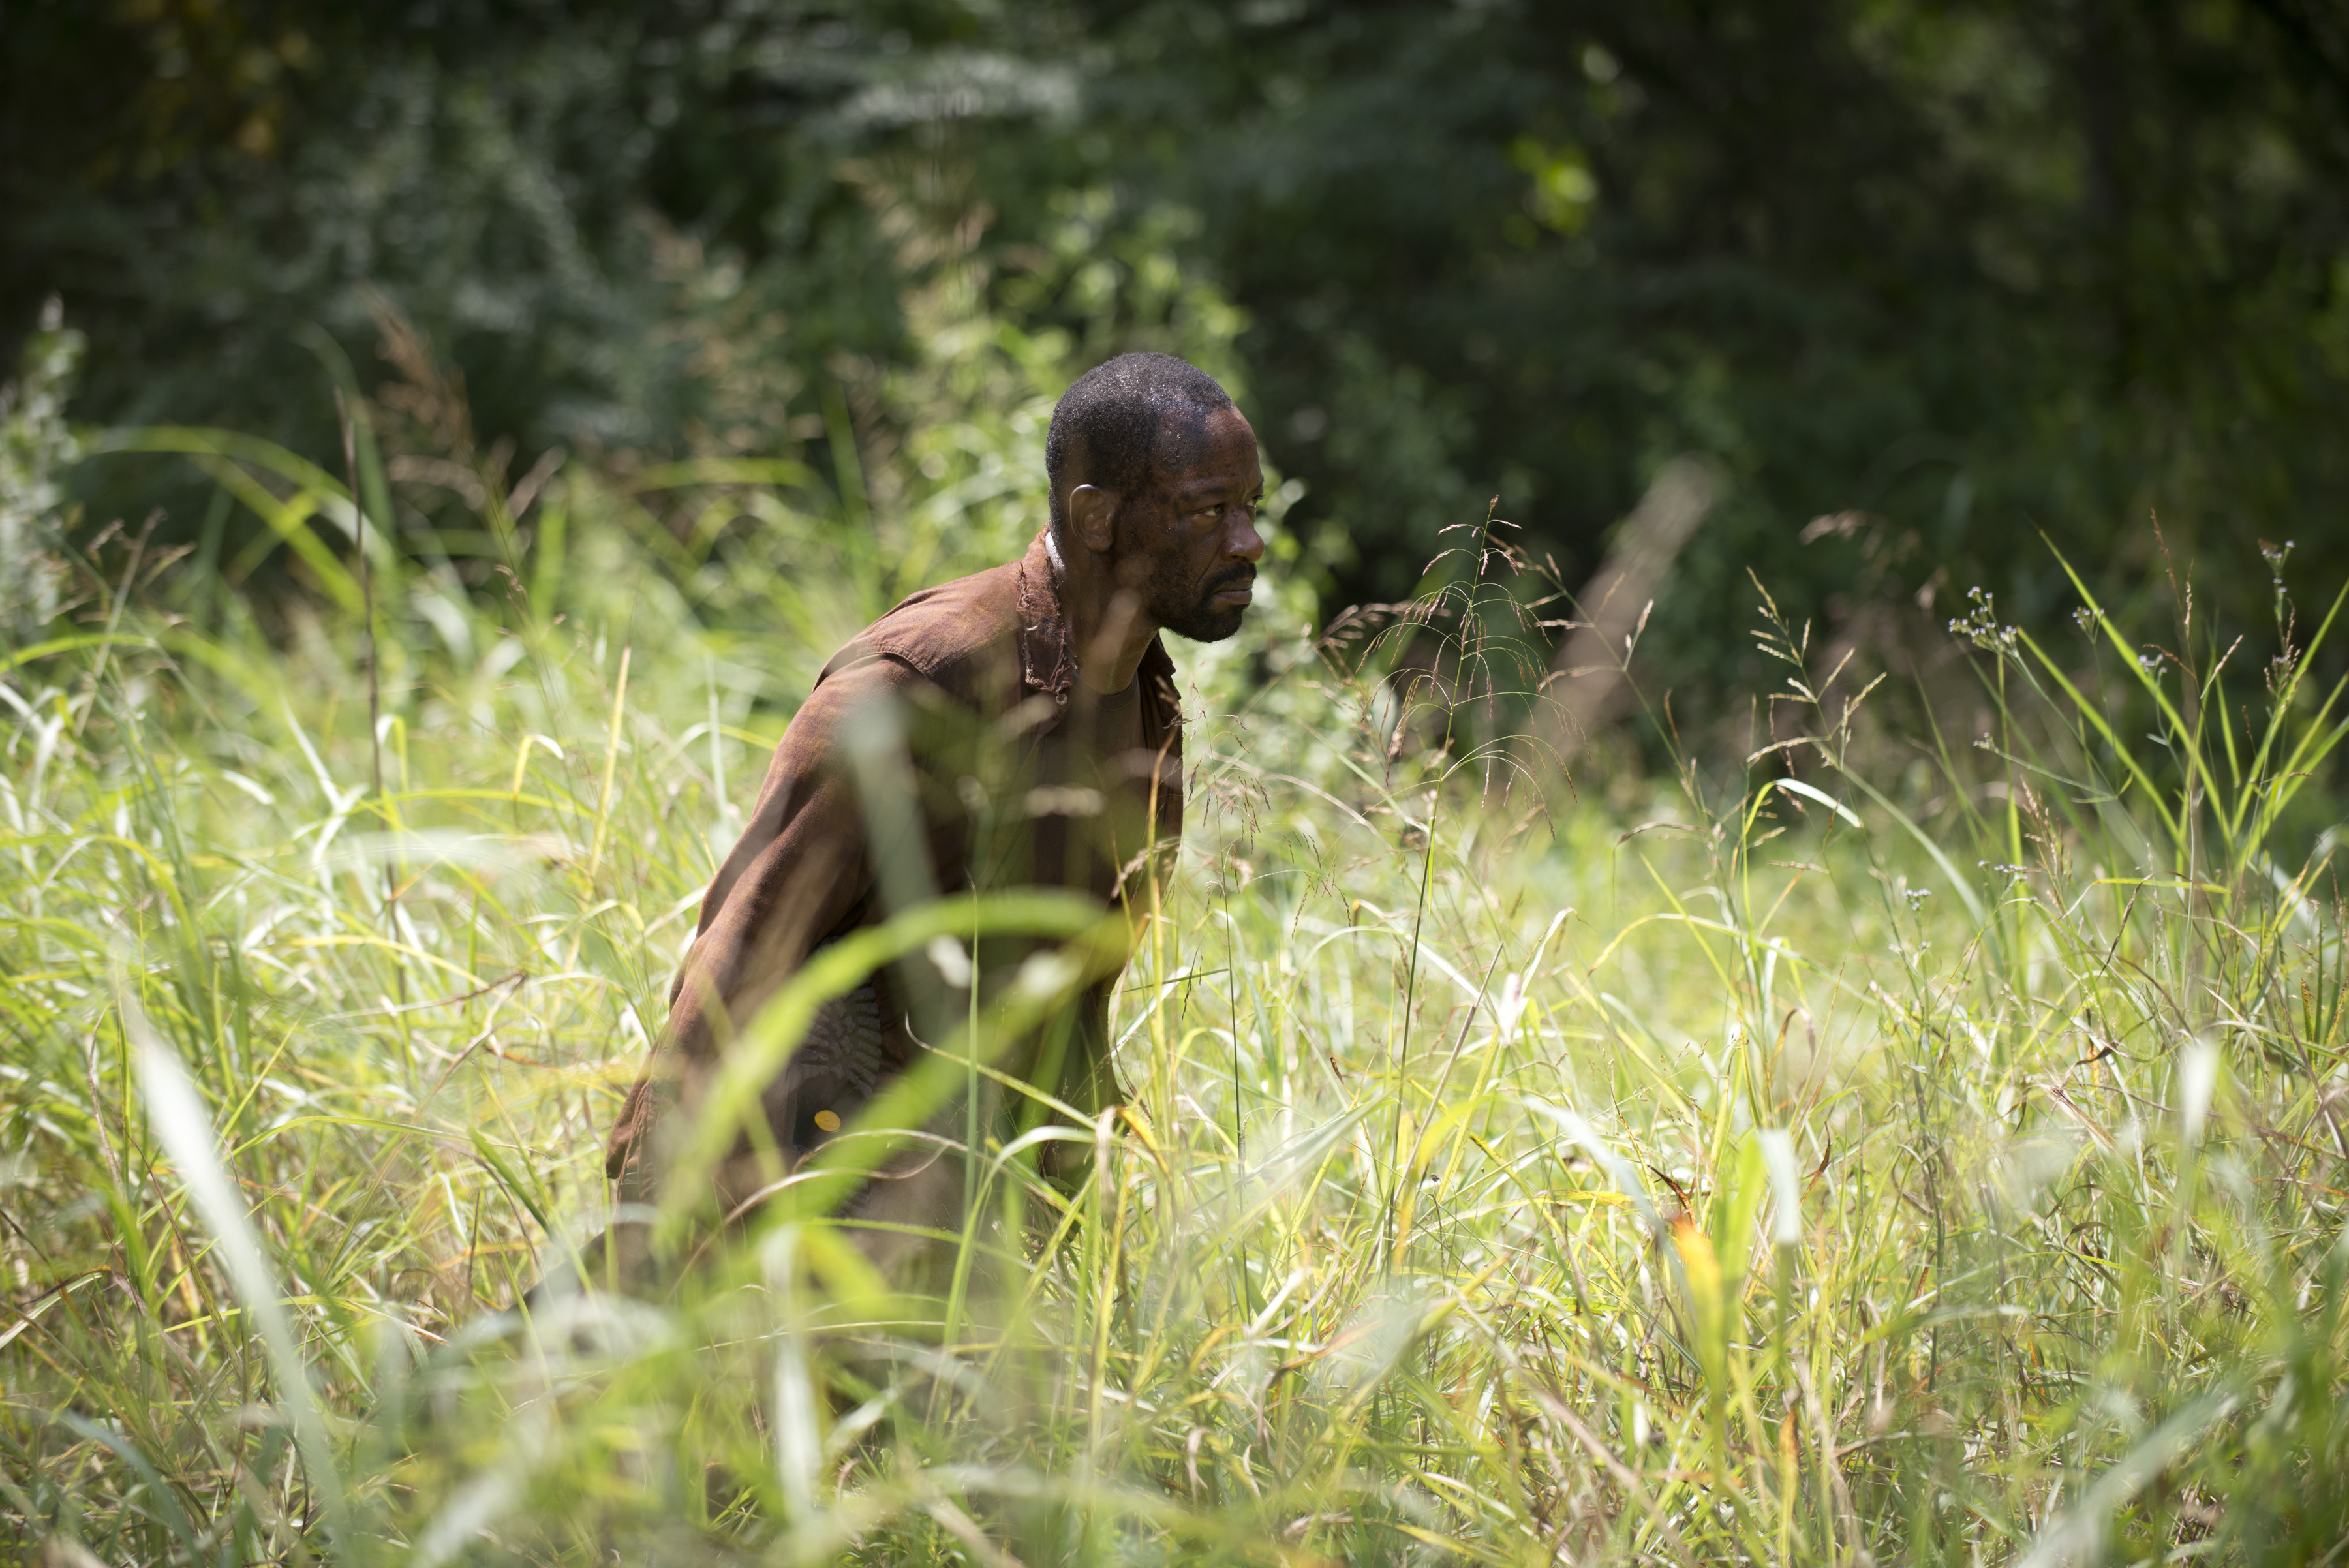 Morgan wanders in the weeds. It could have been an apt metaphor for this episode!